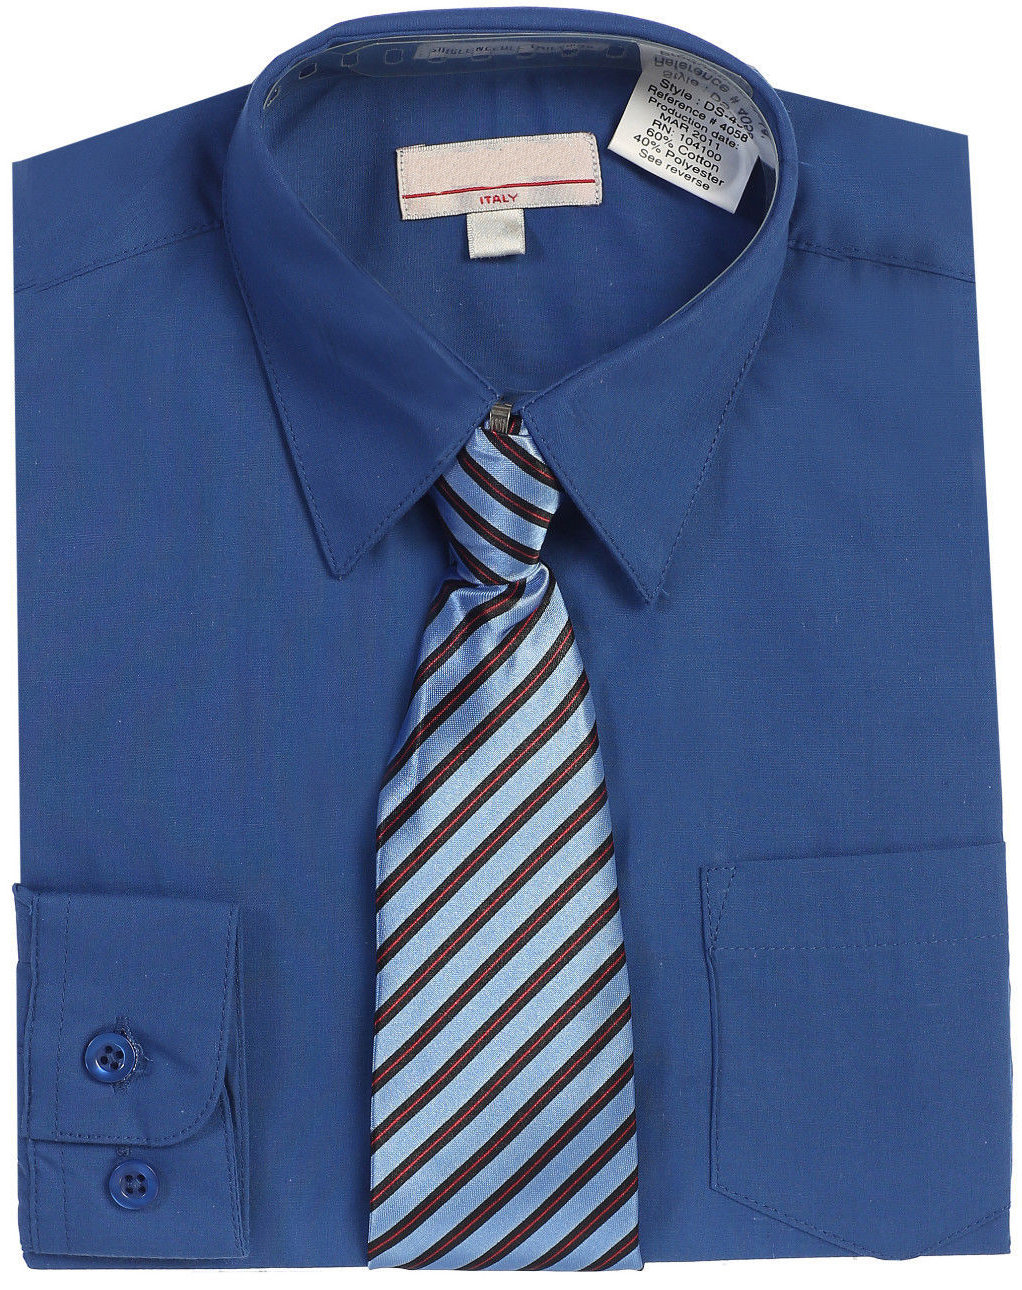 Boys Royal Blue Shirt